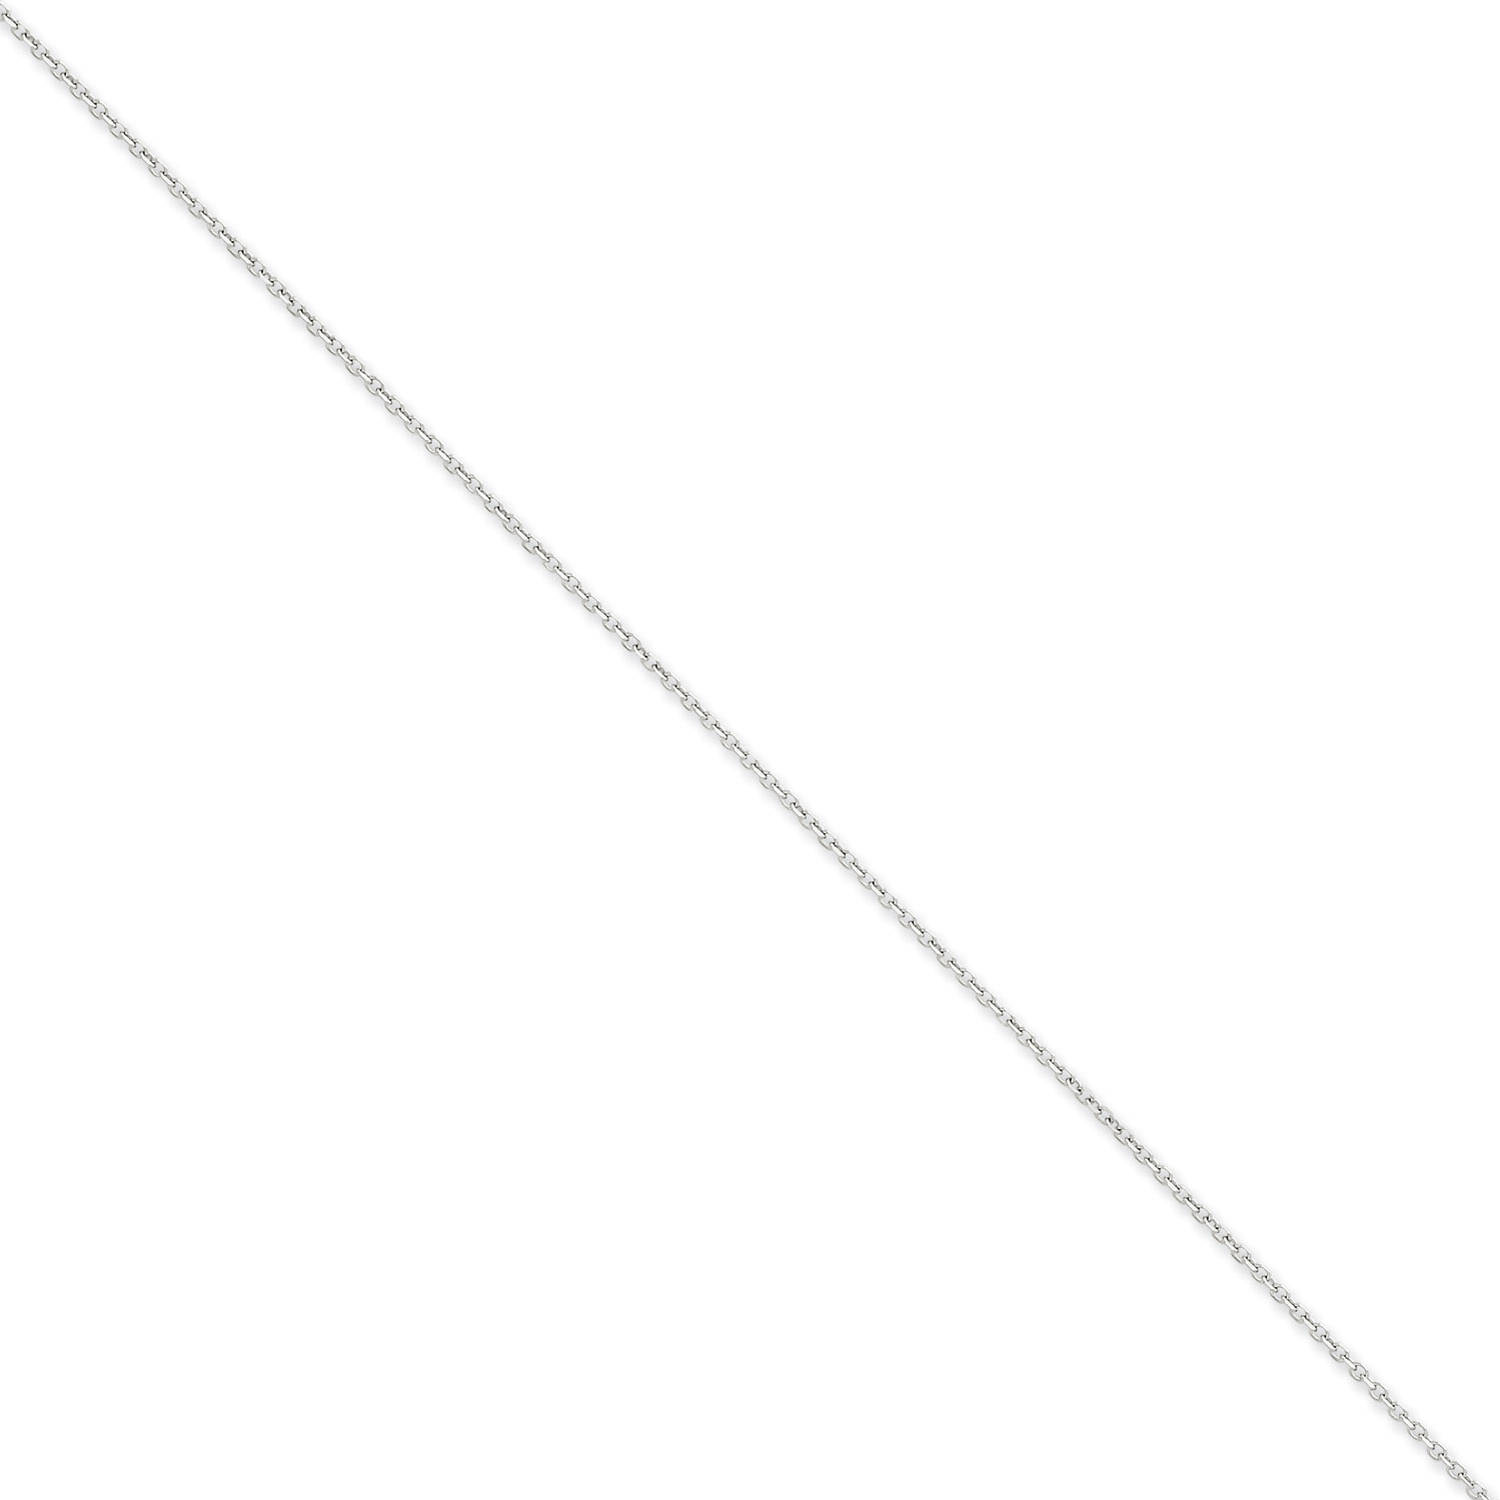 14kt White Gold 1.40mm Diamond-Cut Cable Chain by Generic